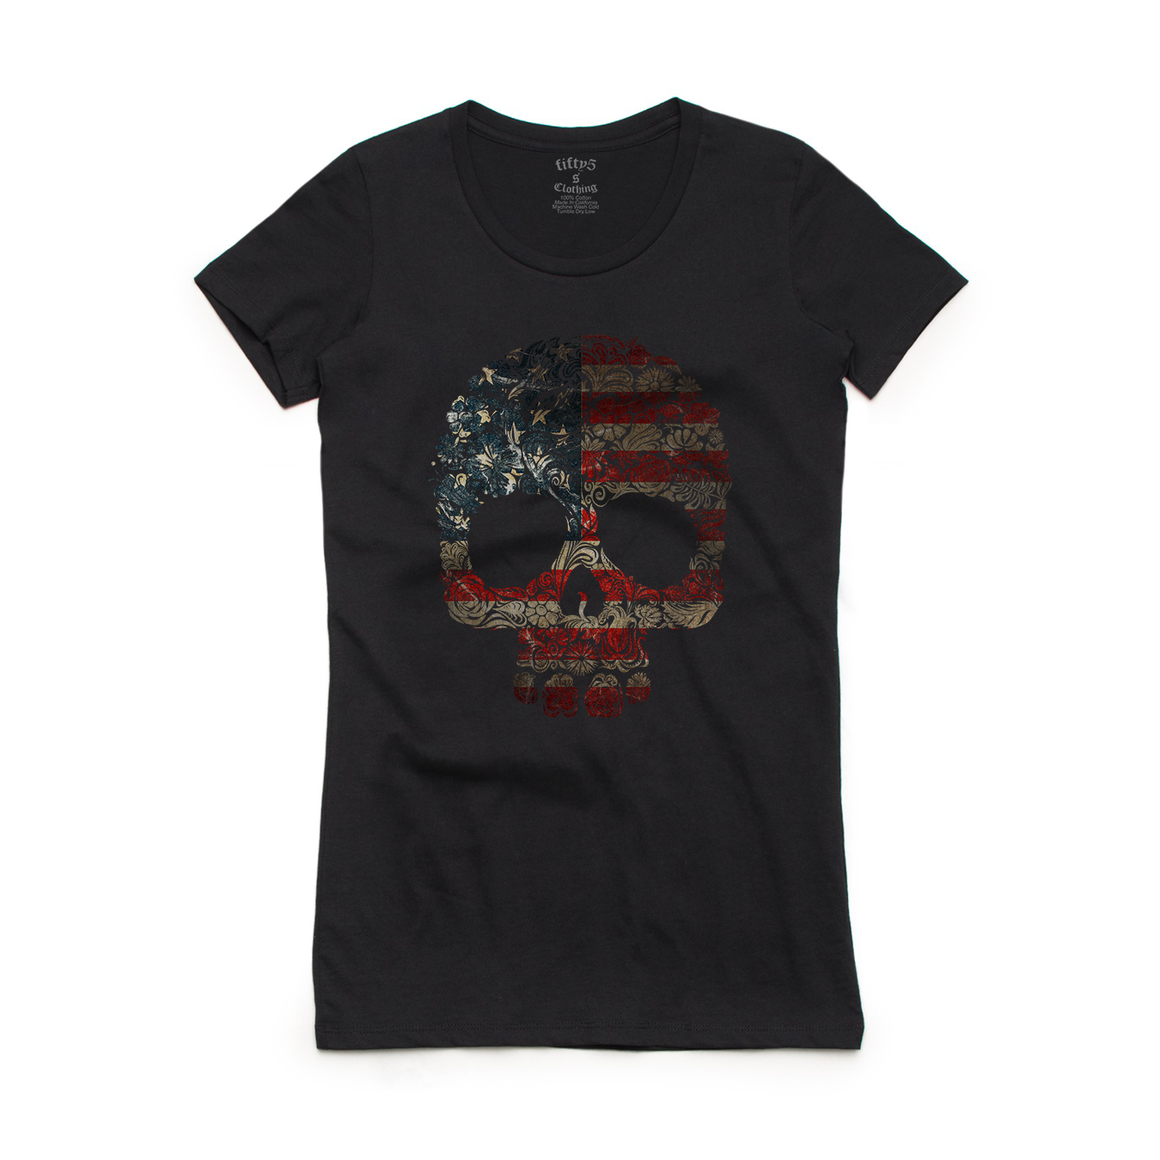 Fifty5 Clothing Floral Flag Skull Women's Crew Neck T-Shirt